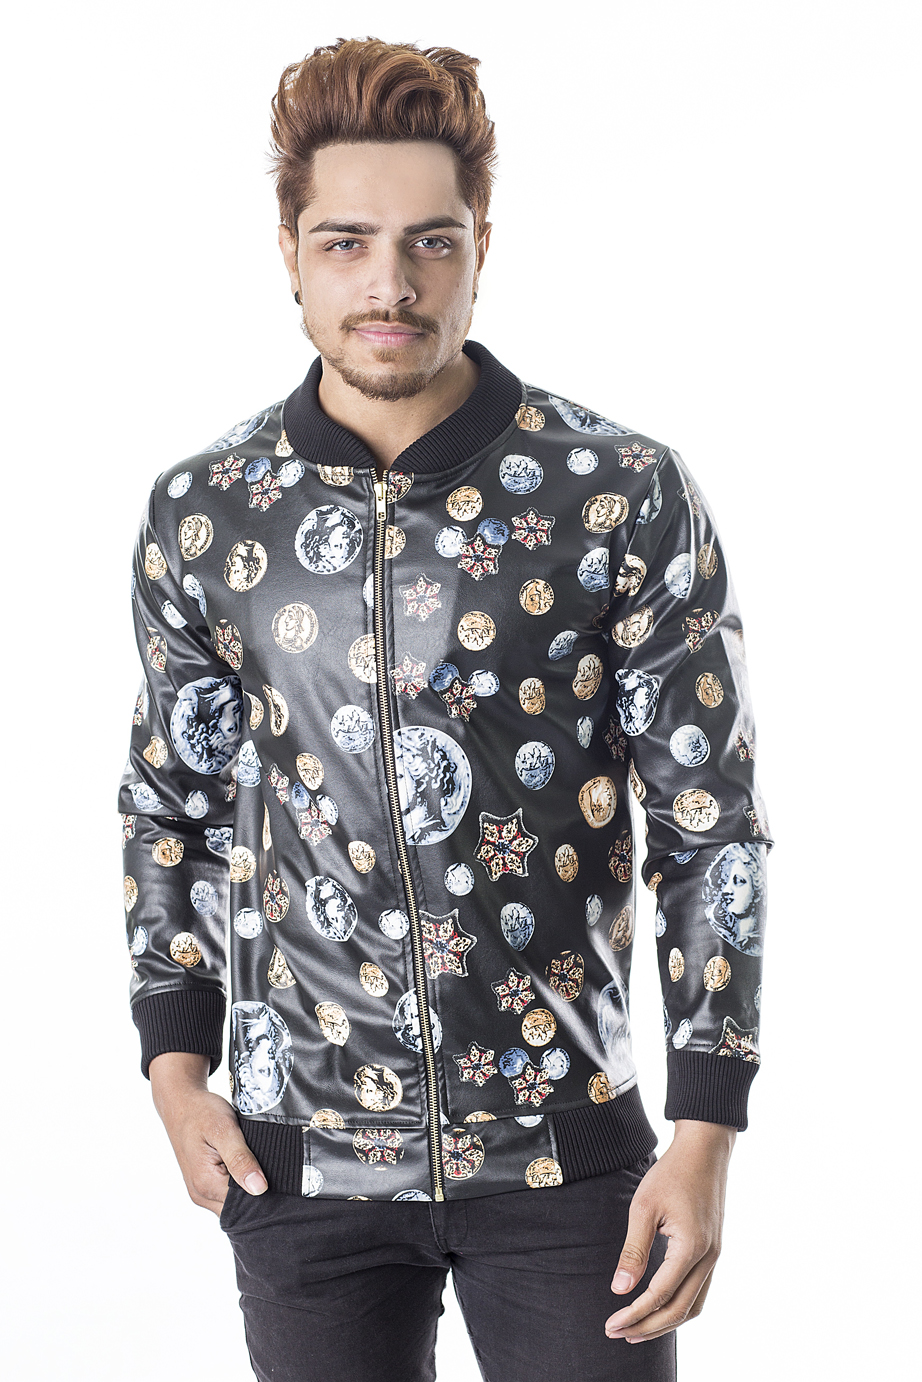 RELLIN-MEN-LONDON-COIN-PRINTED-LEATHER-JACKET